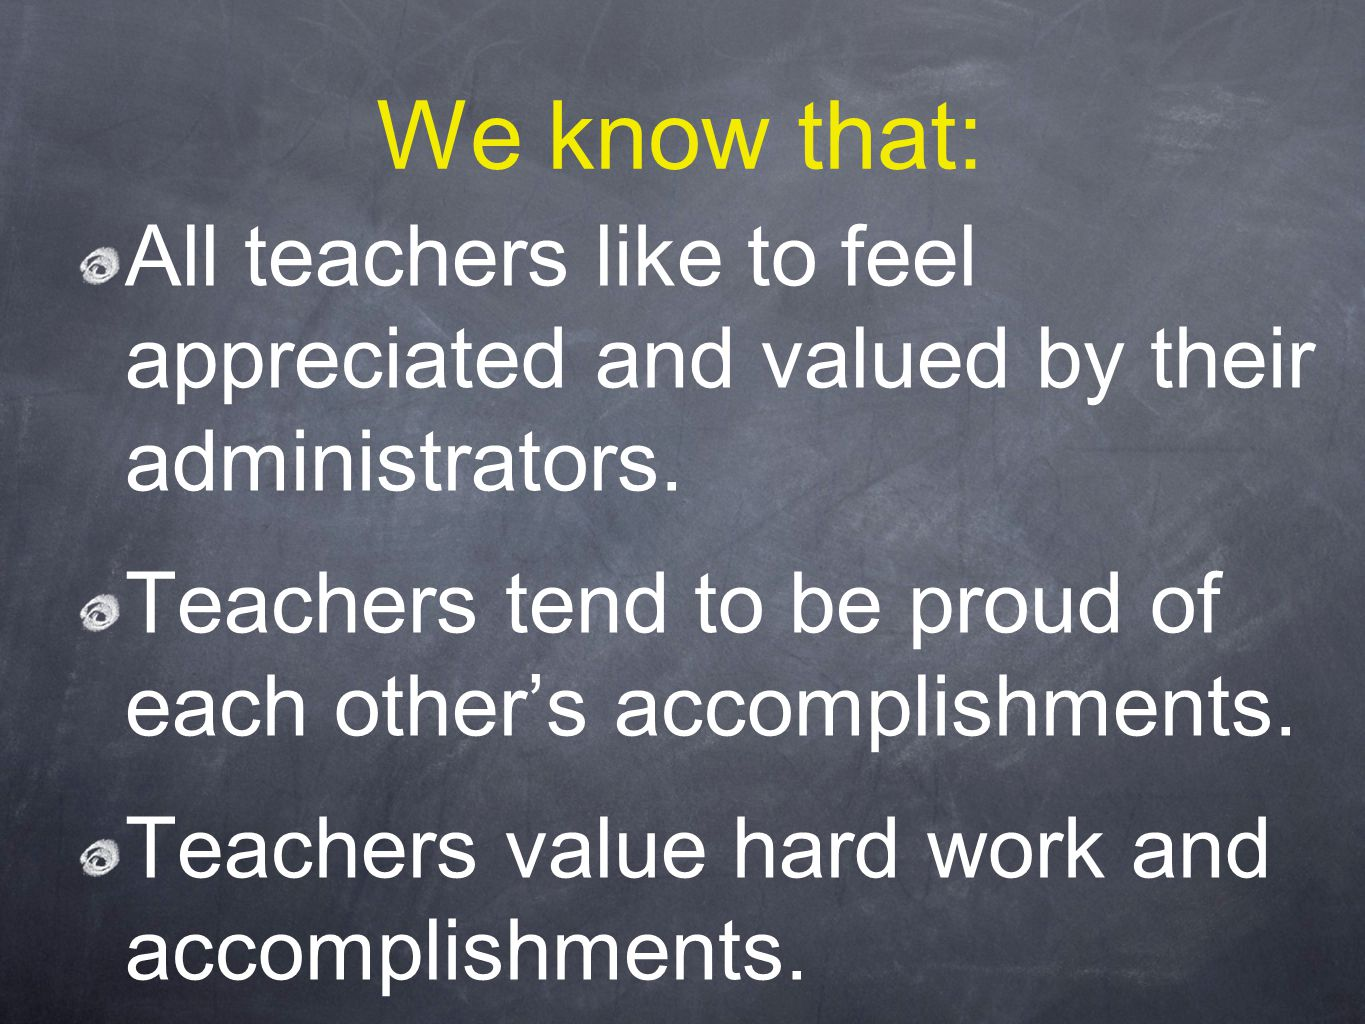 We know that: All teachers like to feel appreciated and valued by their administrators.